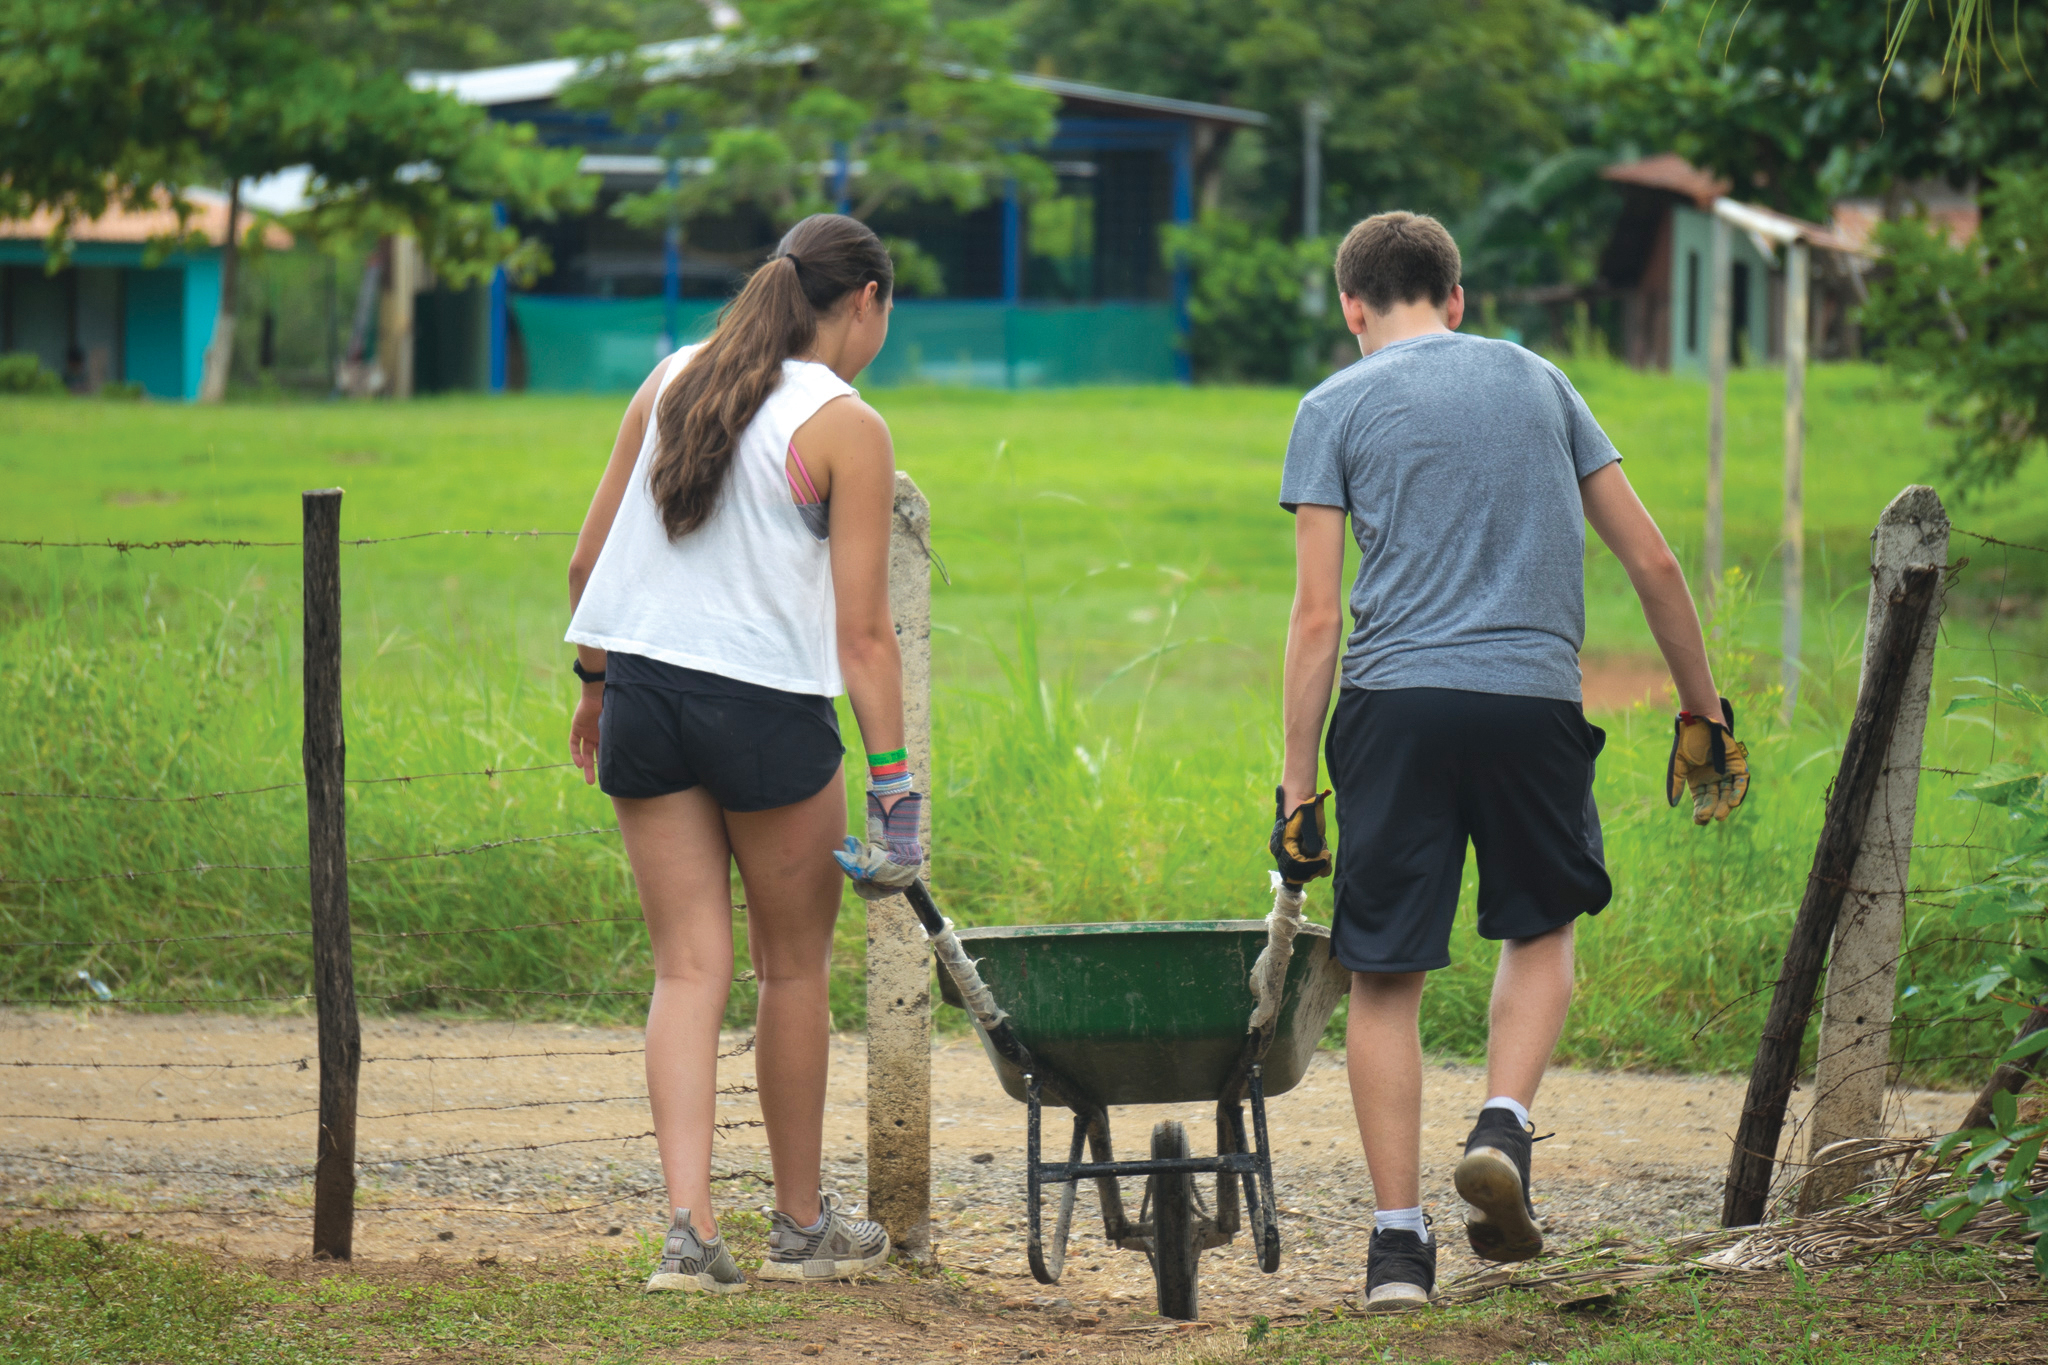 Costa Rica Community Service - 21 Days 7